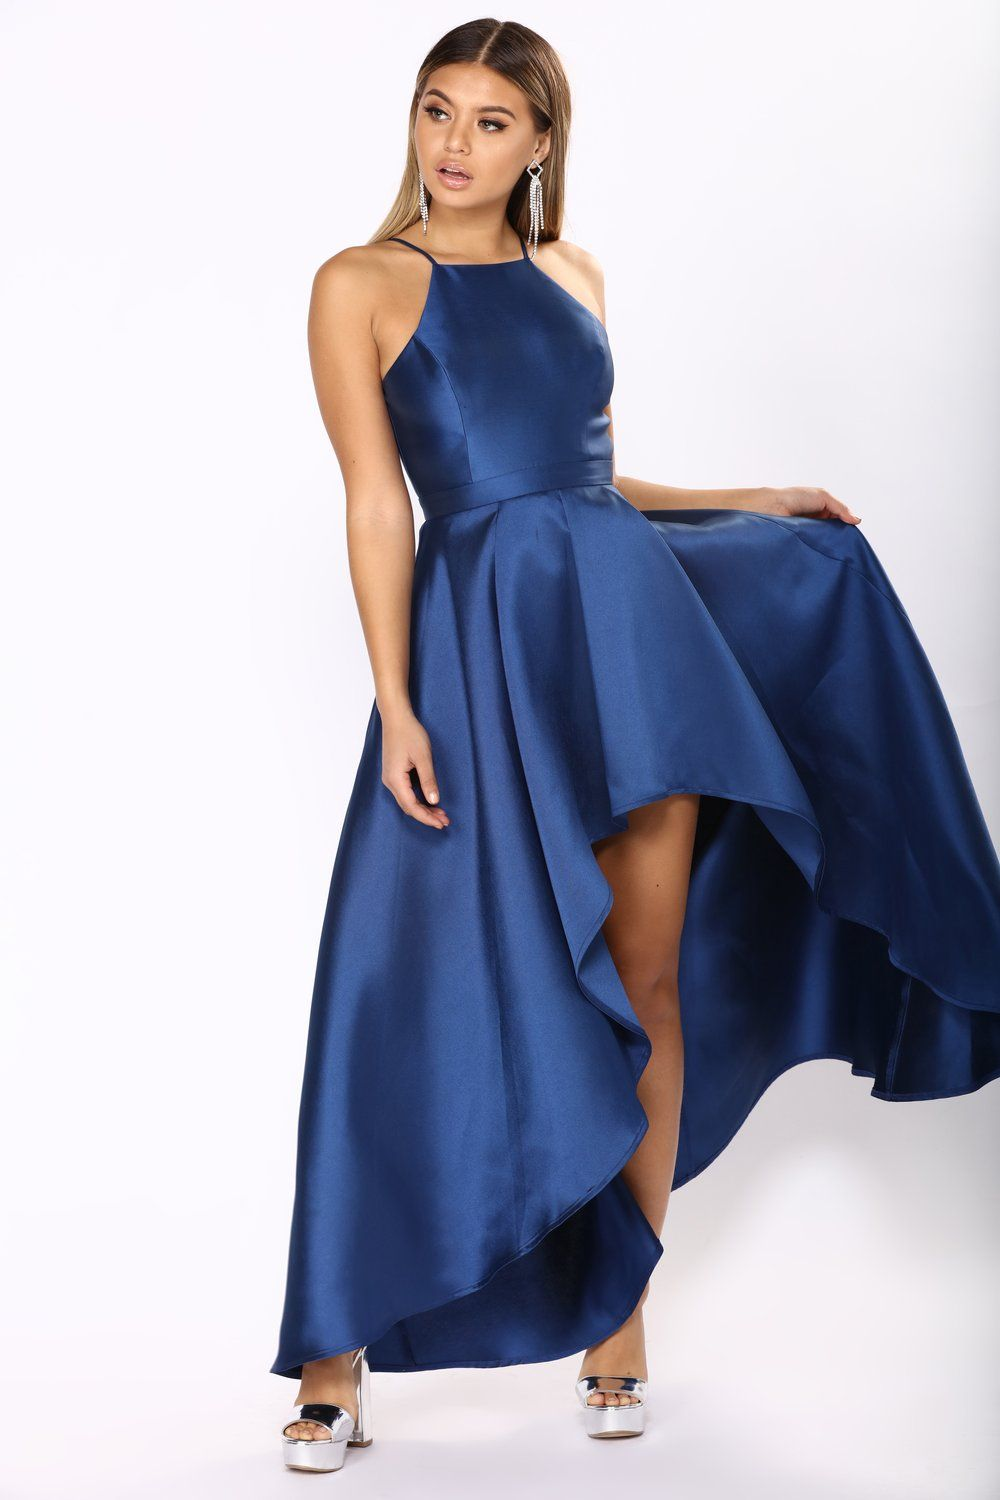 Heartedly High Low Dress Navy Blue High Low Dress Fashion Nova Prom Dresses High Low Dress Formal